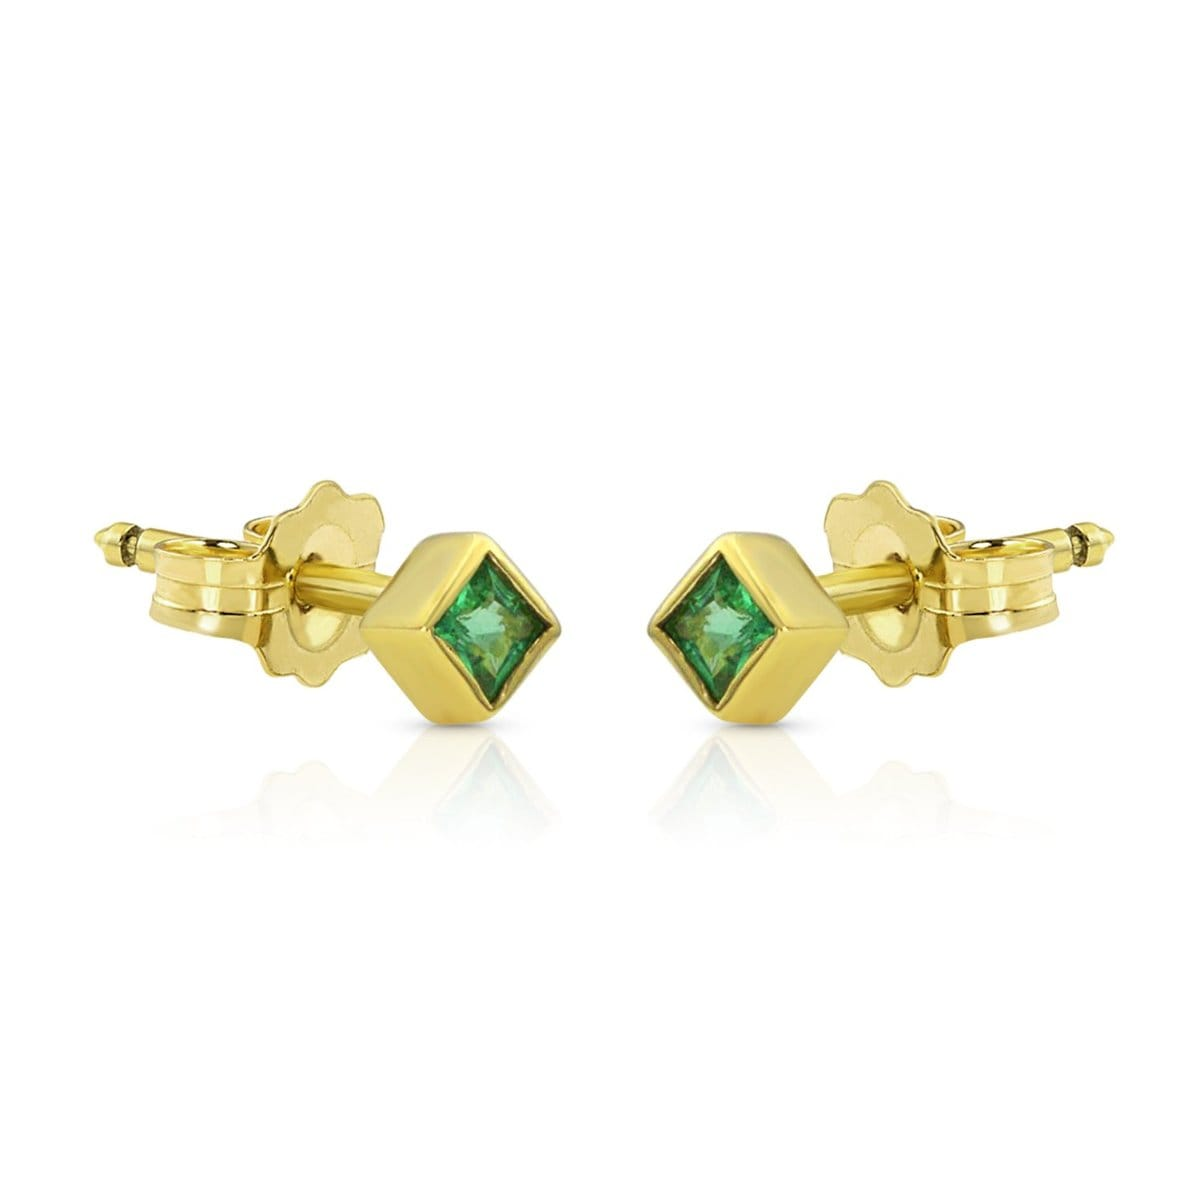 Princess Cut Emerald gold studs